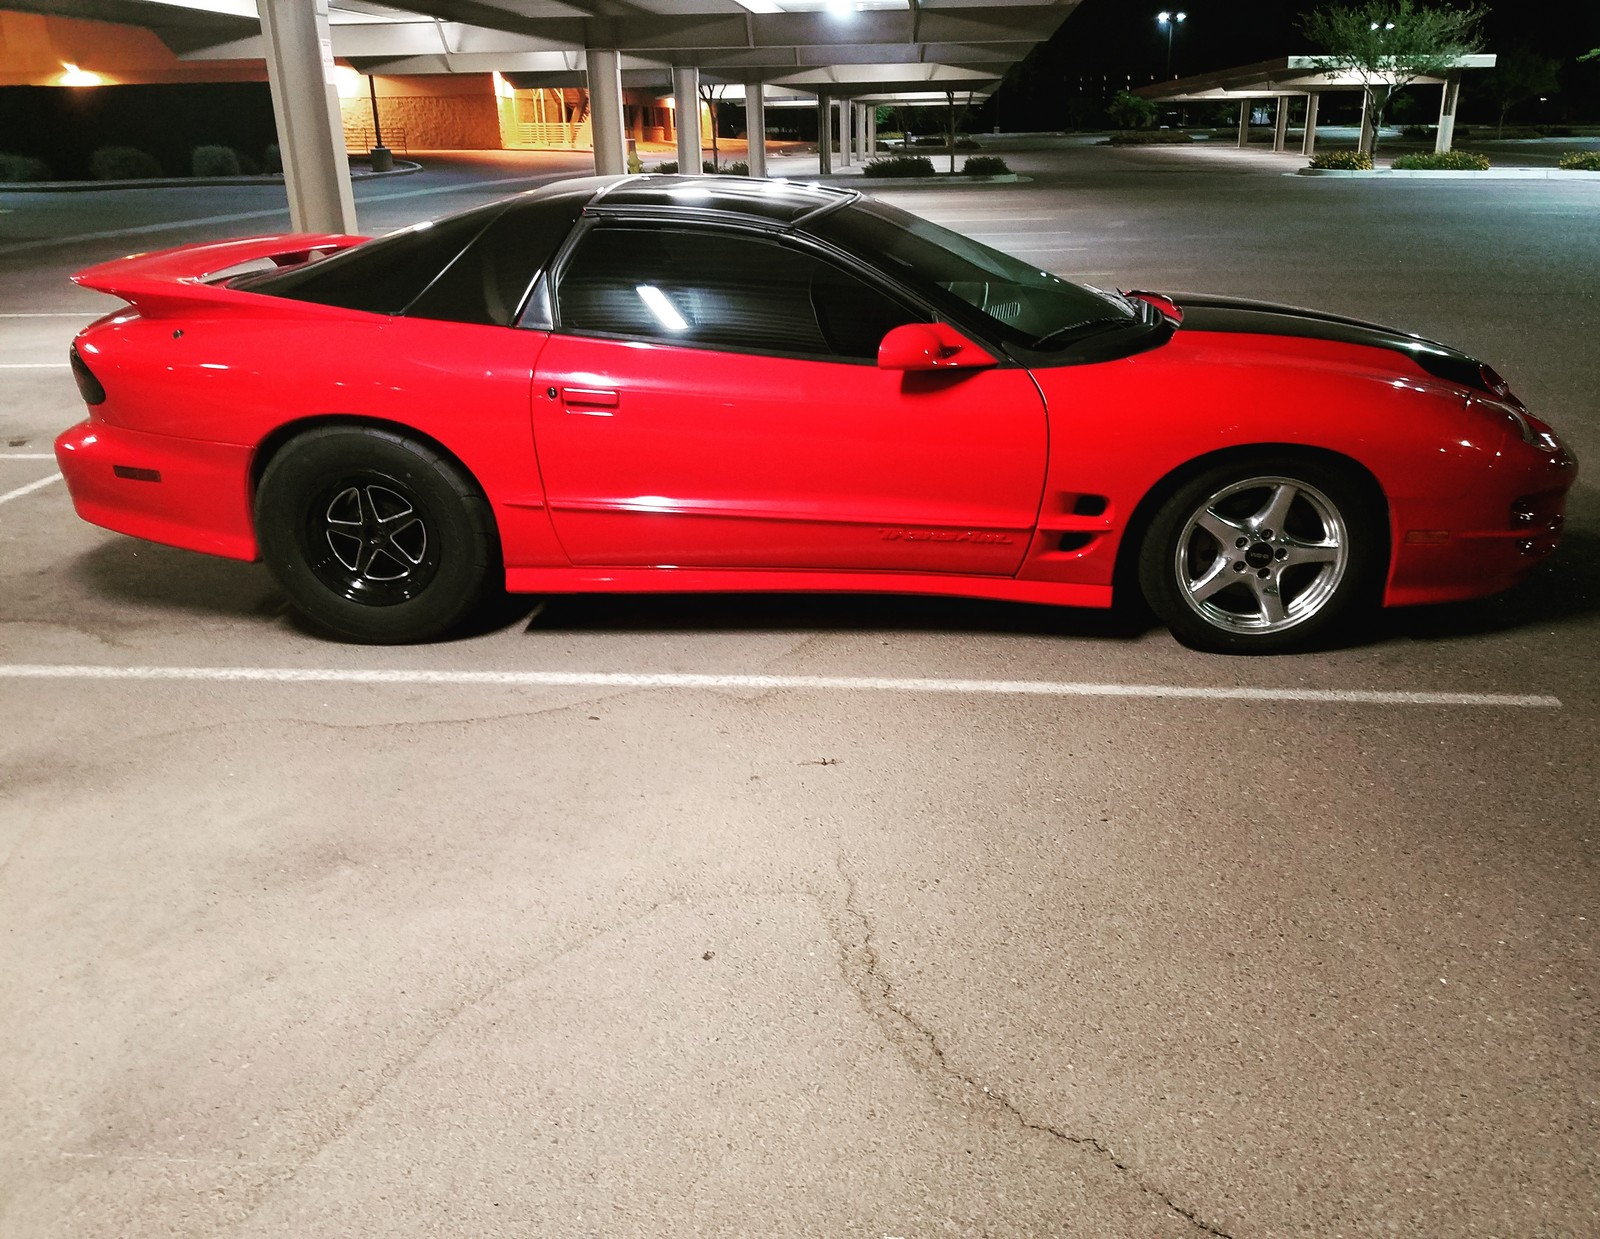 2001 Red Pontiac Trans Am Ws6 picture, mods, upgrades